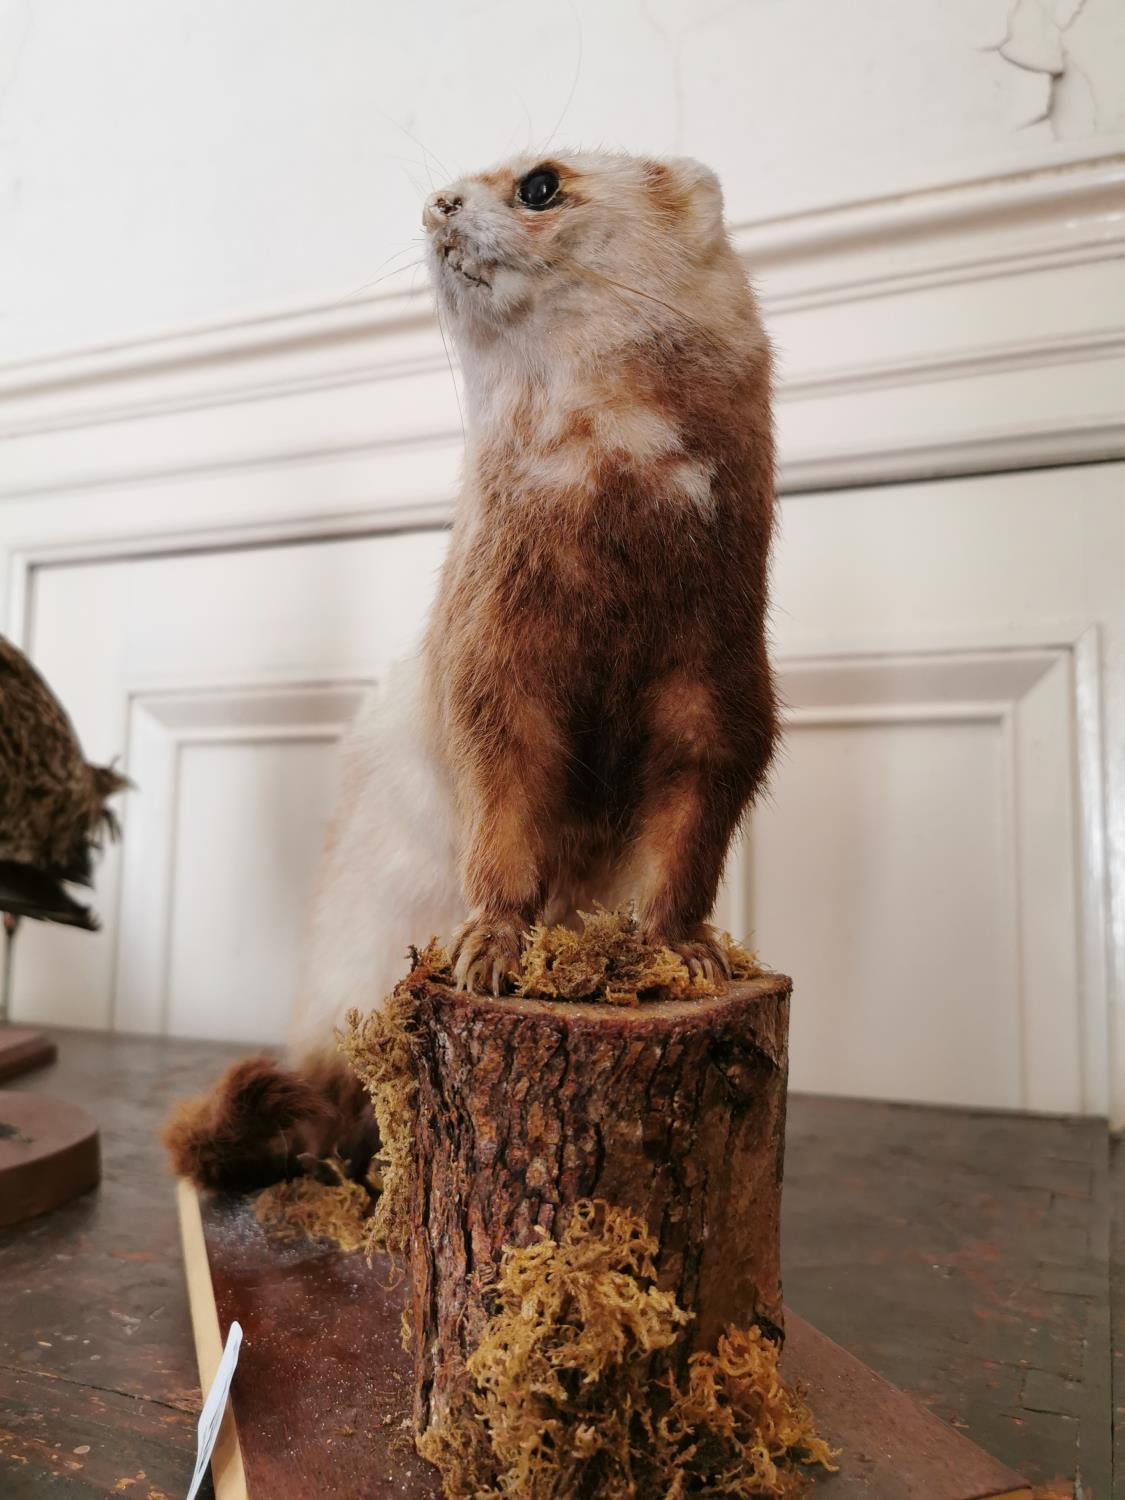 Taxidermy stoat - Image 2 of 2